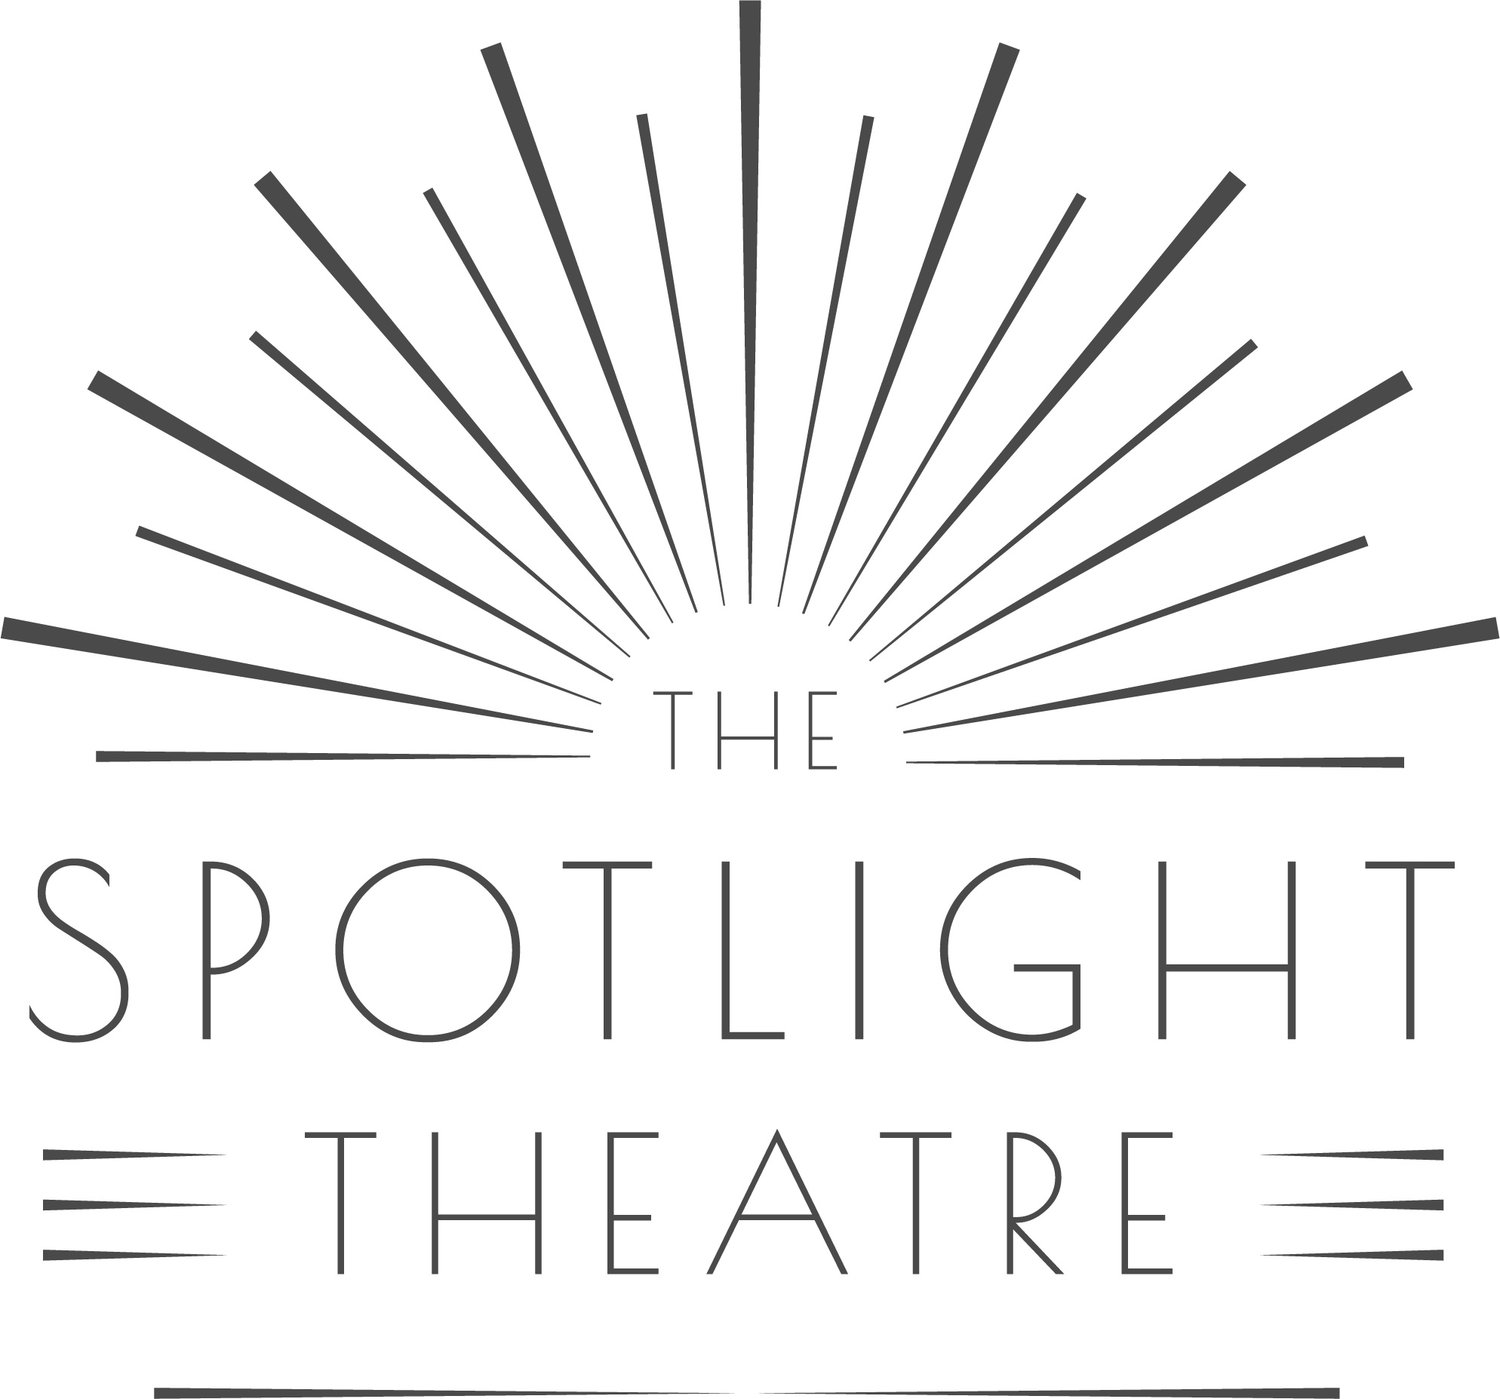 The Spotlight Theatre